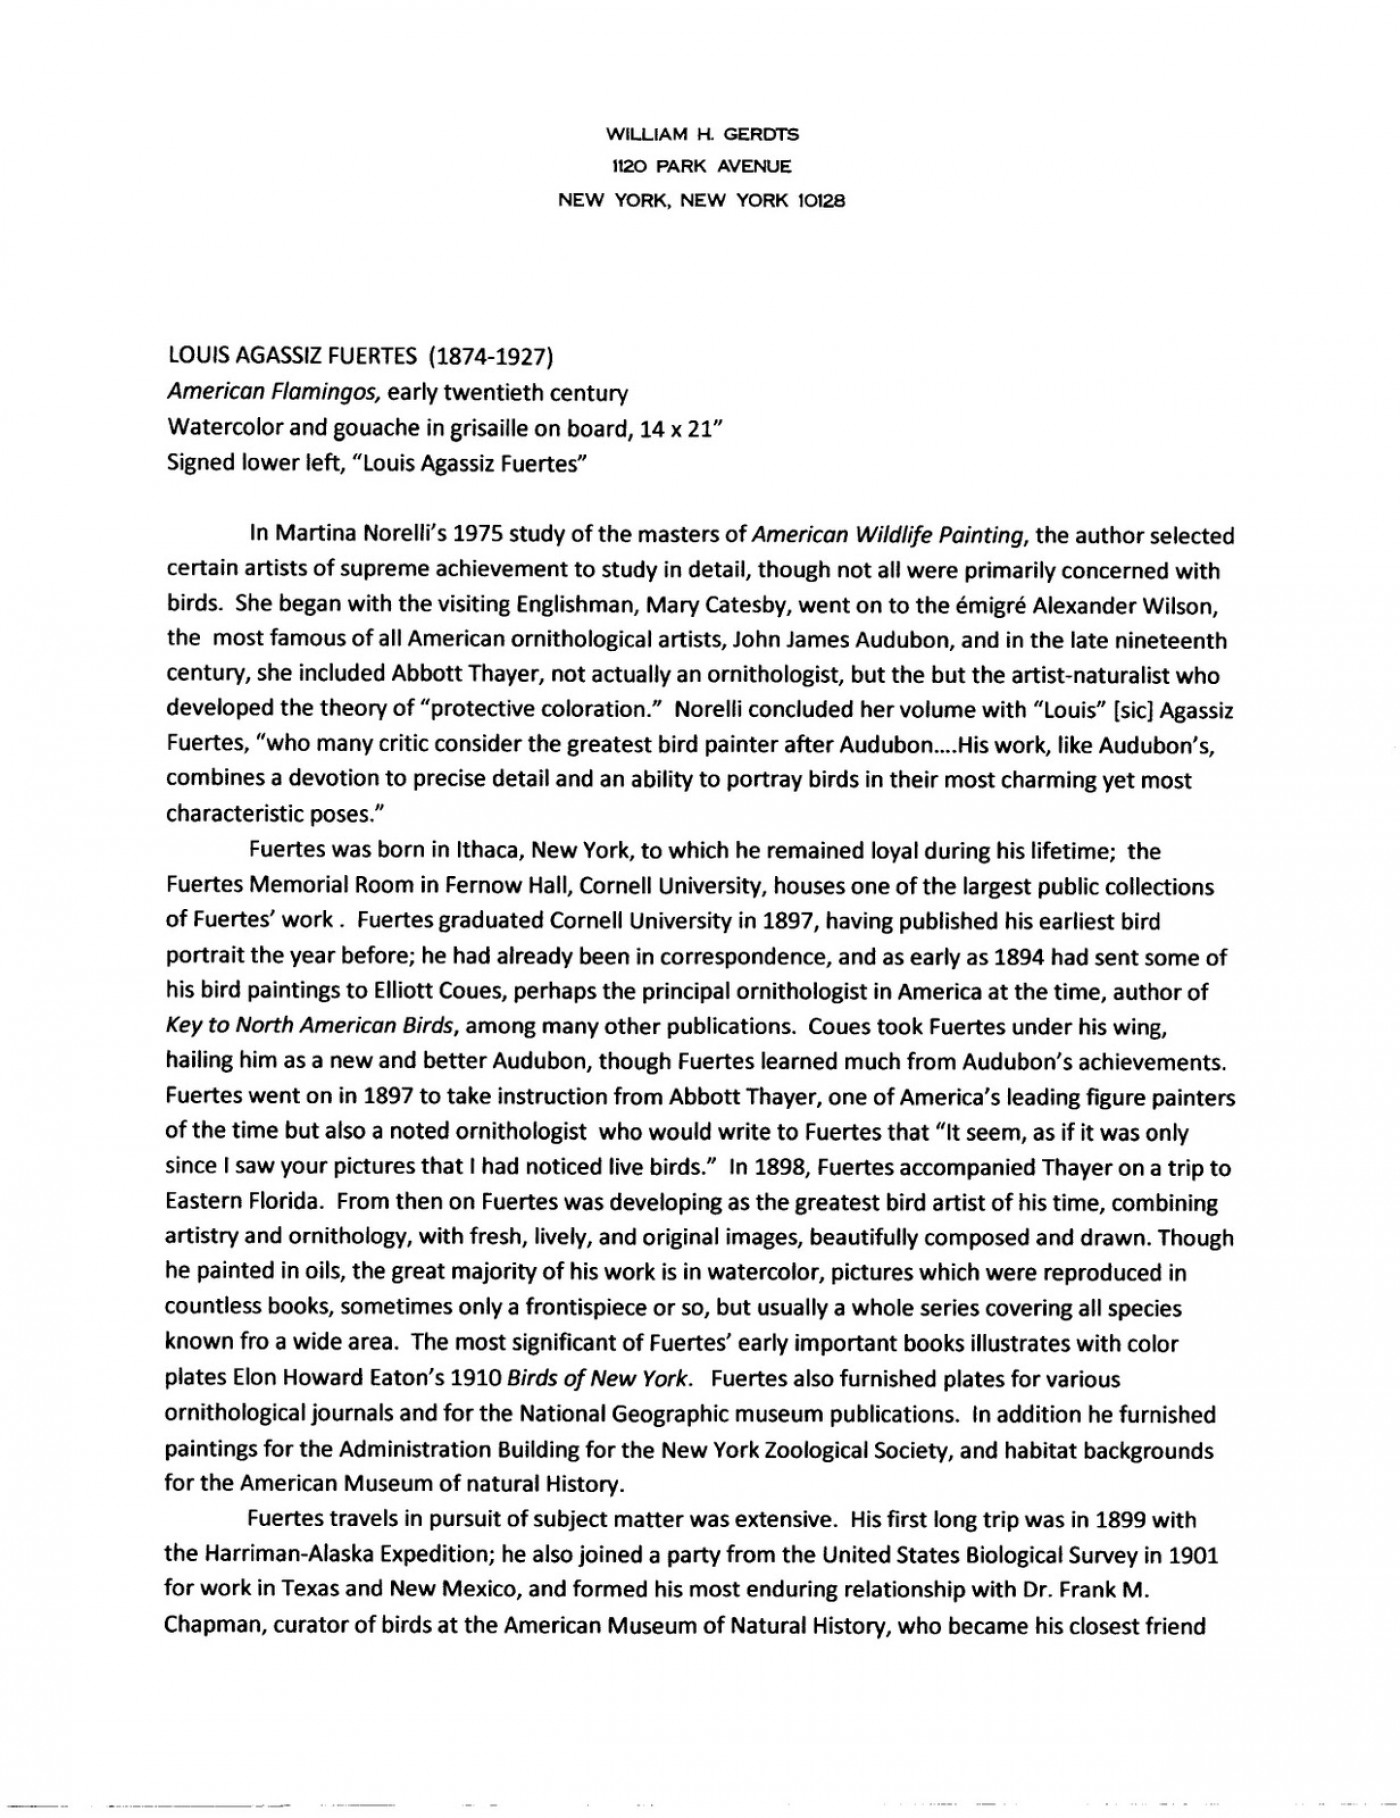 018 Osteopathic Medical School Essay Sample Example Awful 1400